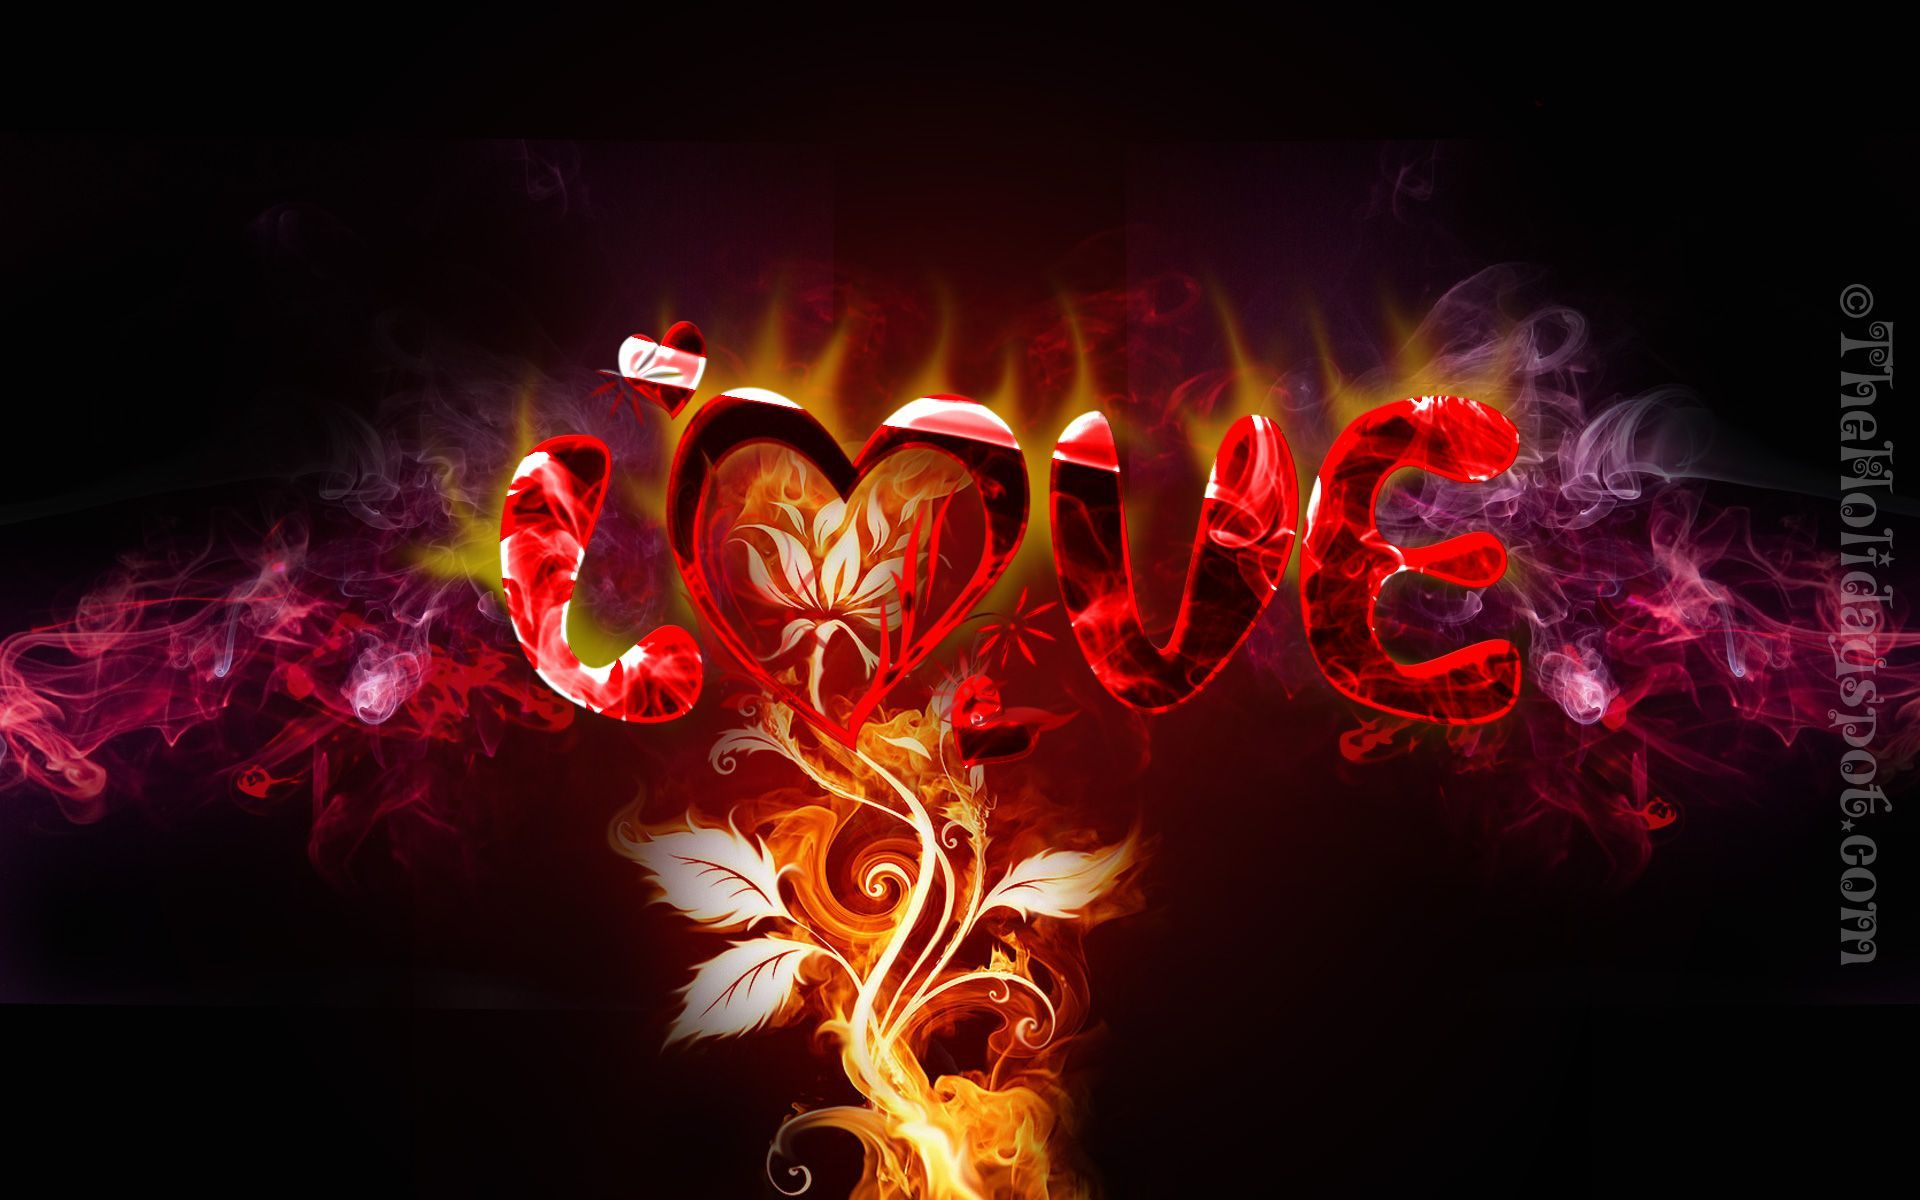 Full Hd Love Wallpapers Free Download - HD Wallpapers Pretty